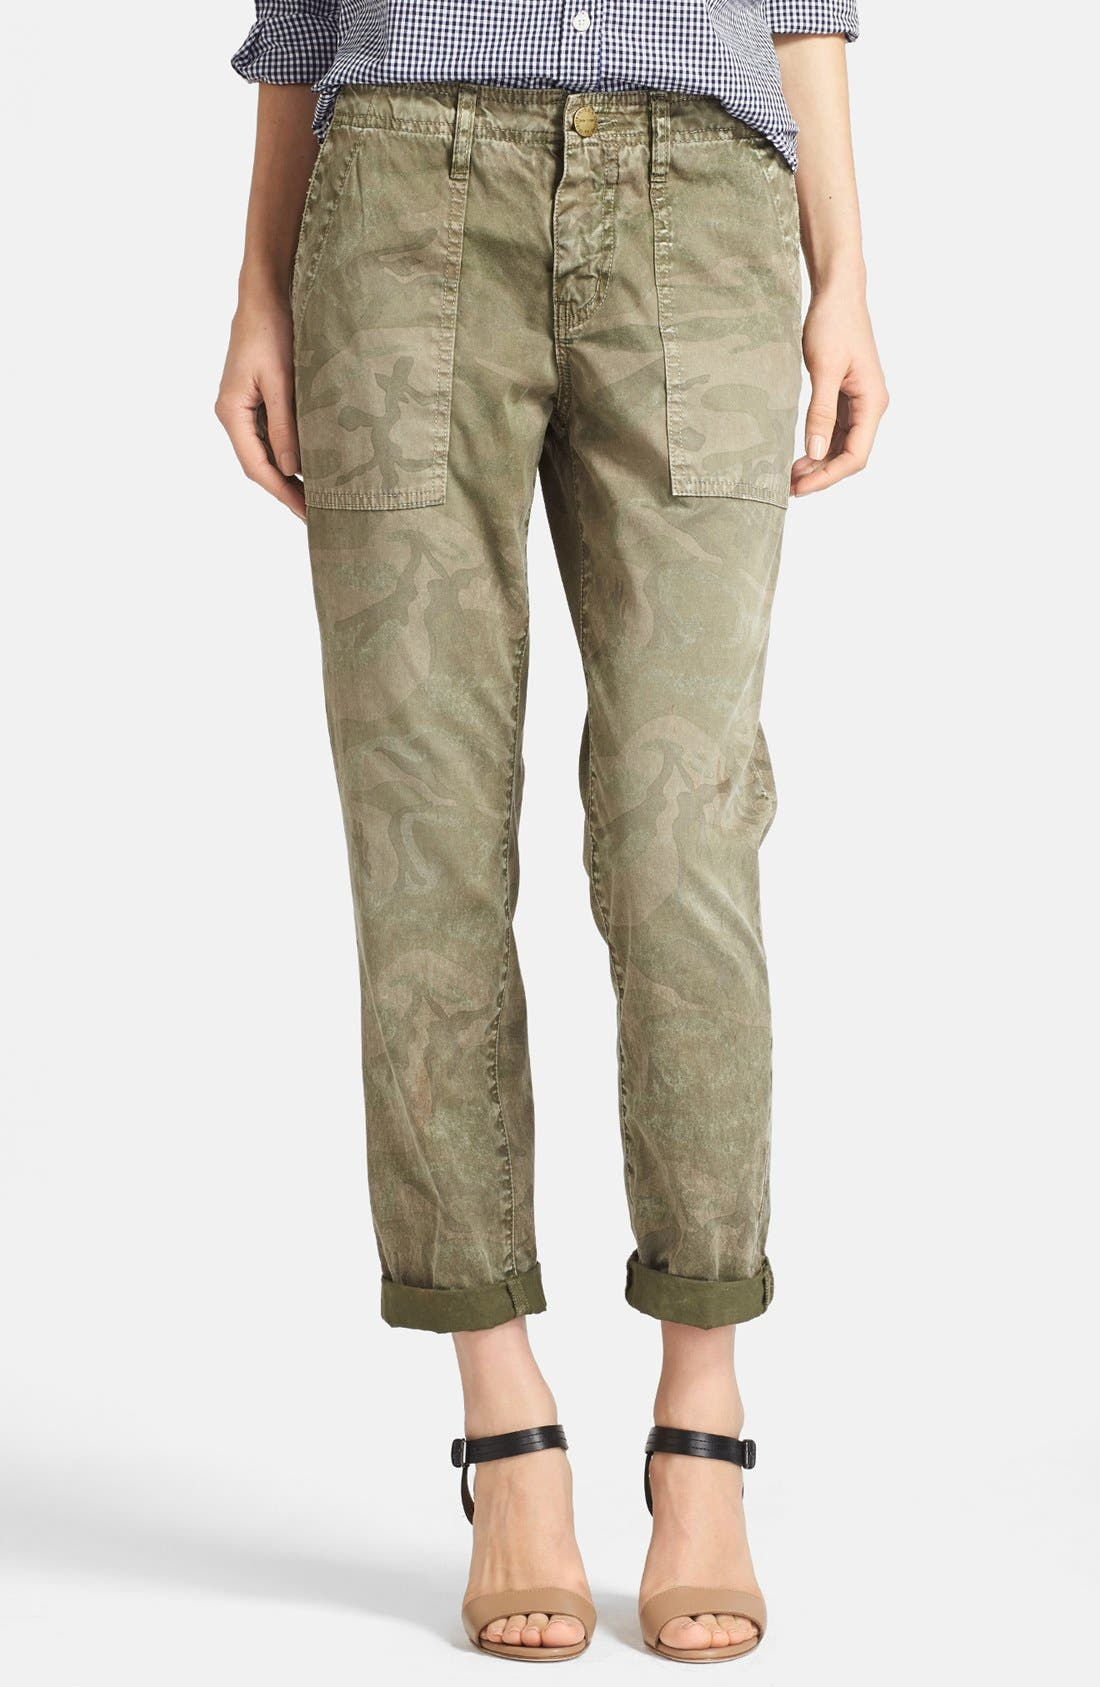 Main Image - Current/Elliott 'The Army Buddy' Jeans (Army Camo)